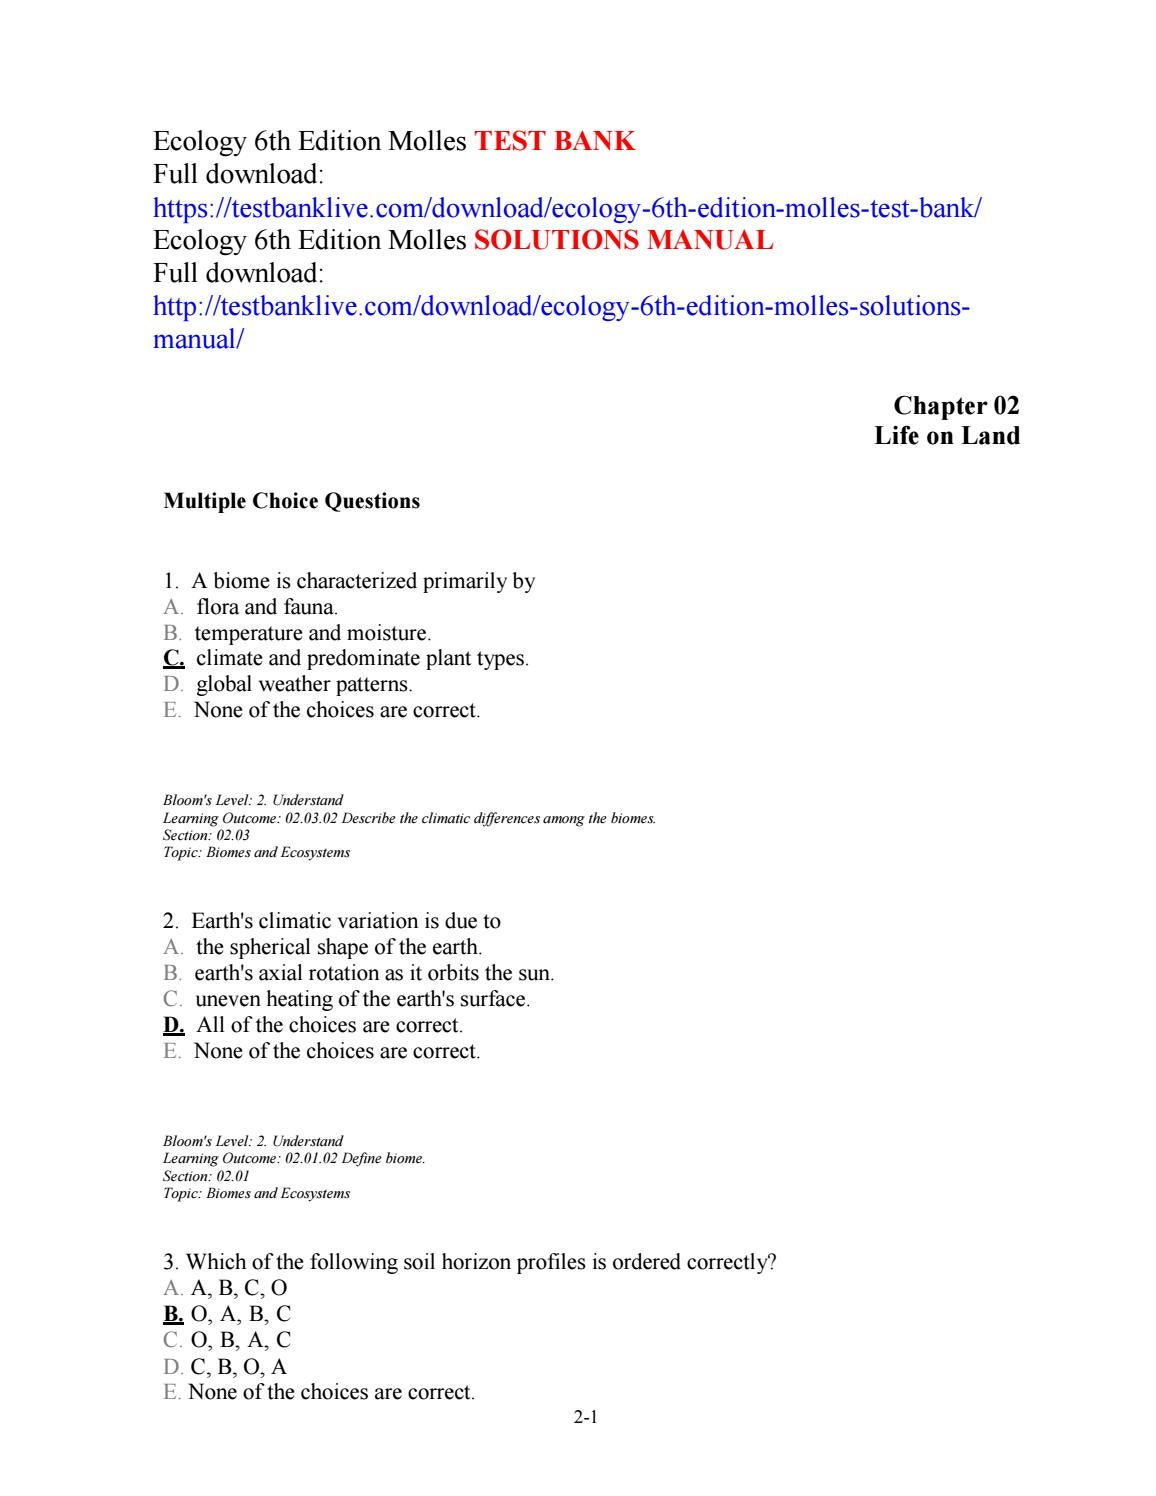 Ecology 6th edition molles test bank by mamoget12 - issuu